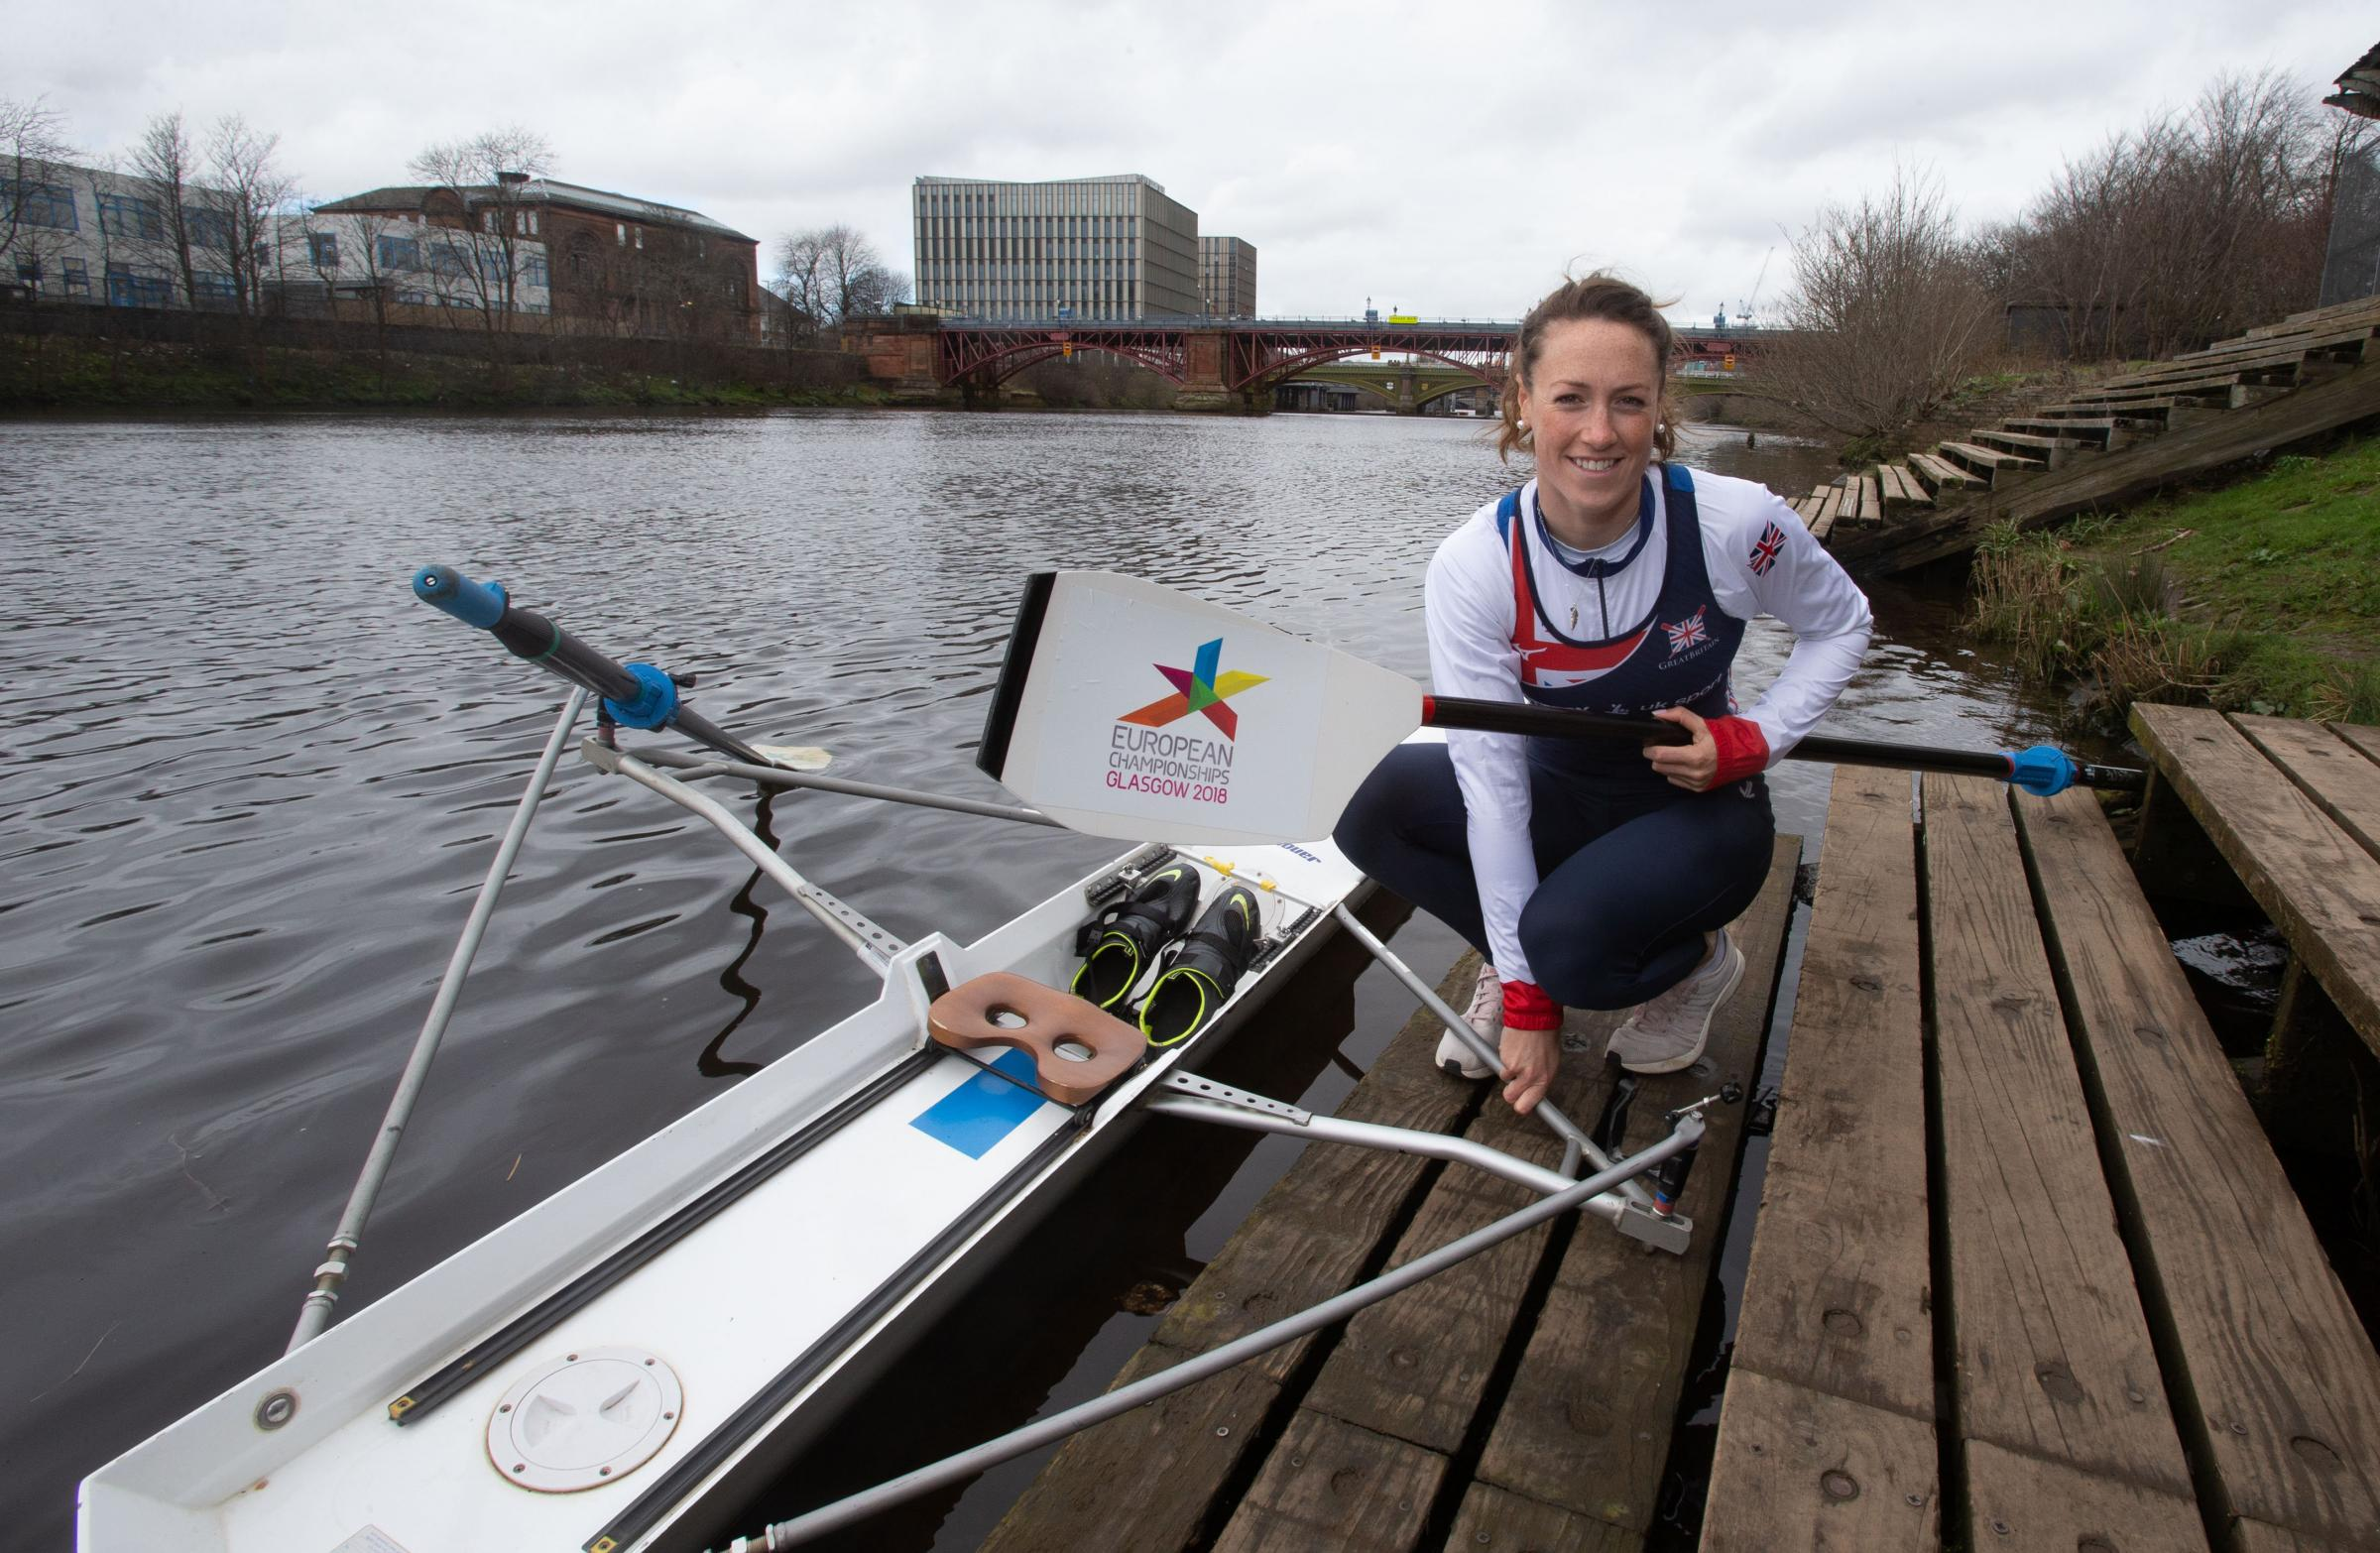 Scottish Rowing star Karen Bennett unveiled as the next official ambassador for the Glasgow 2018 European Championships â the biggest sporting event to be staged in Scotland since the Glasgow 2014 Commonwealth Games..A former European champion and 2016 O